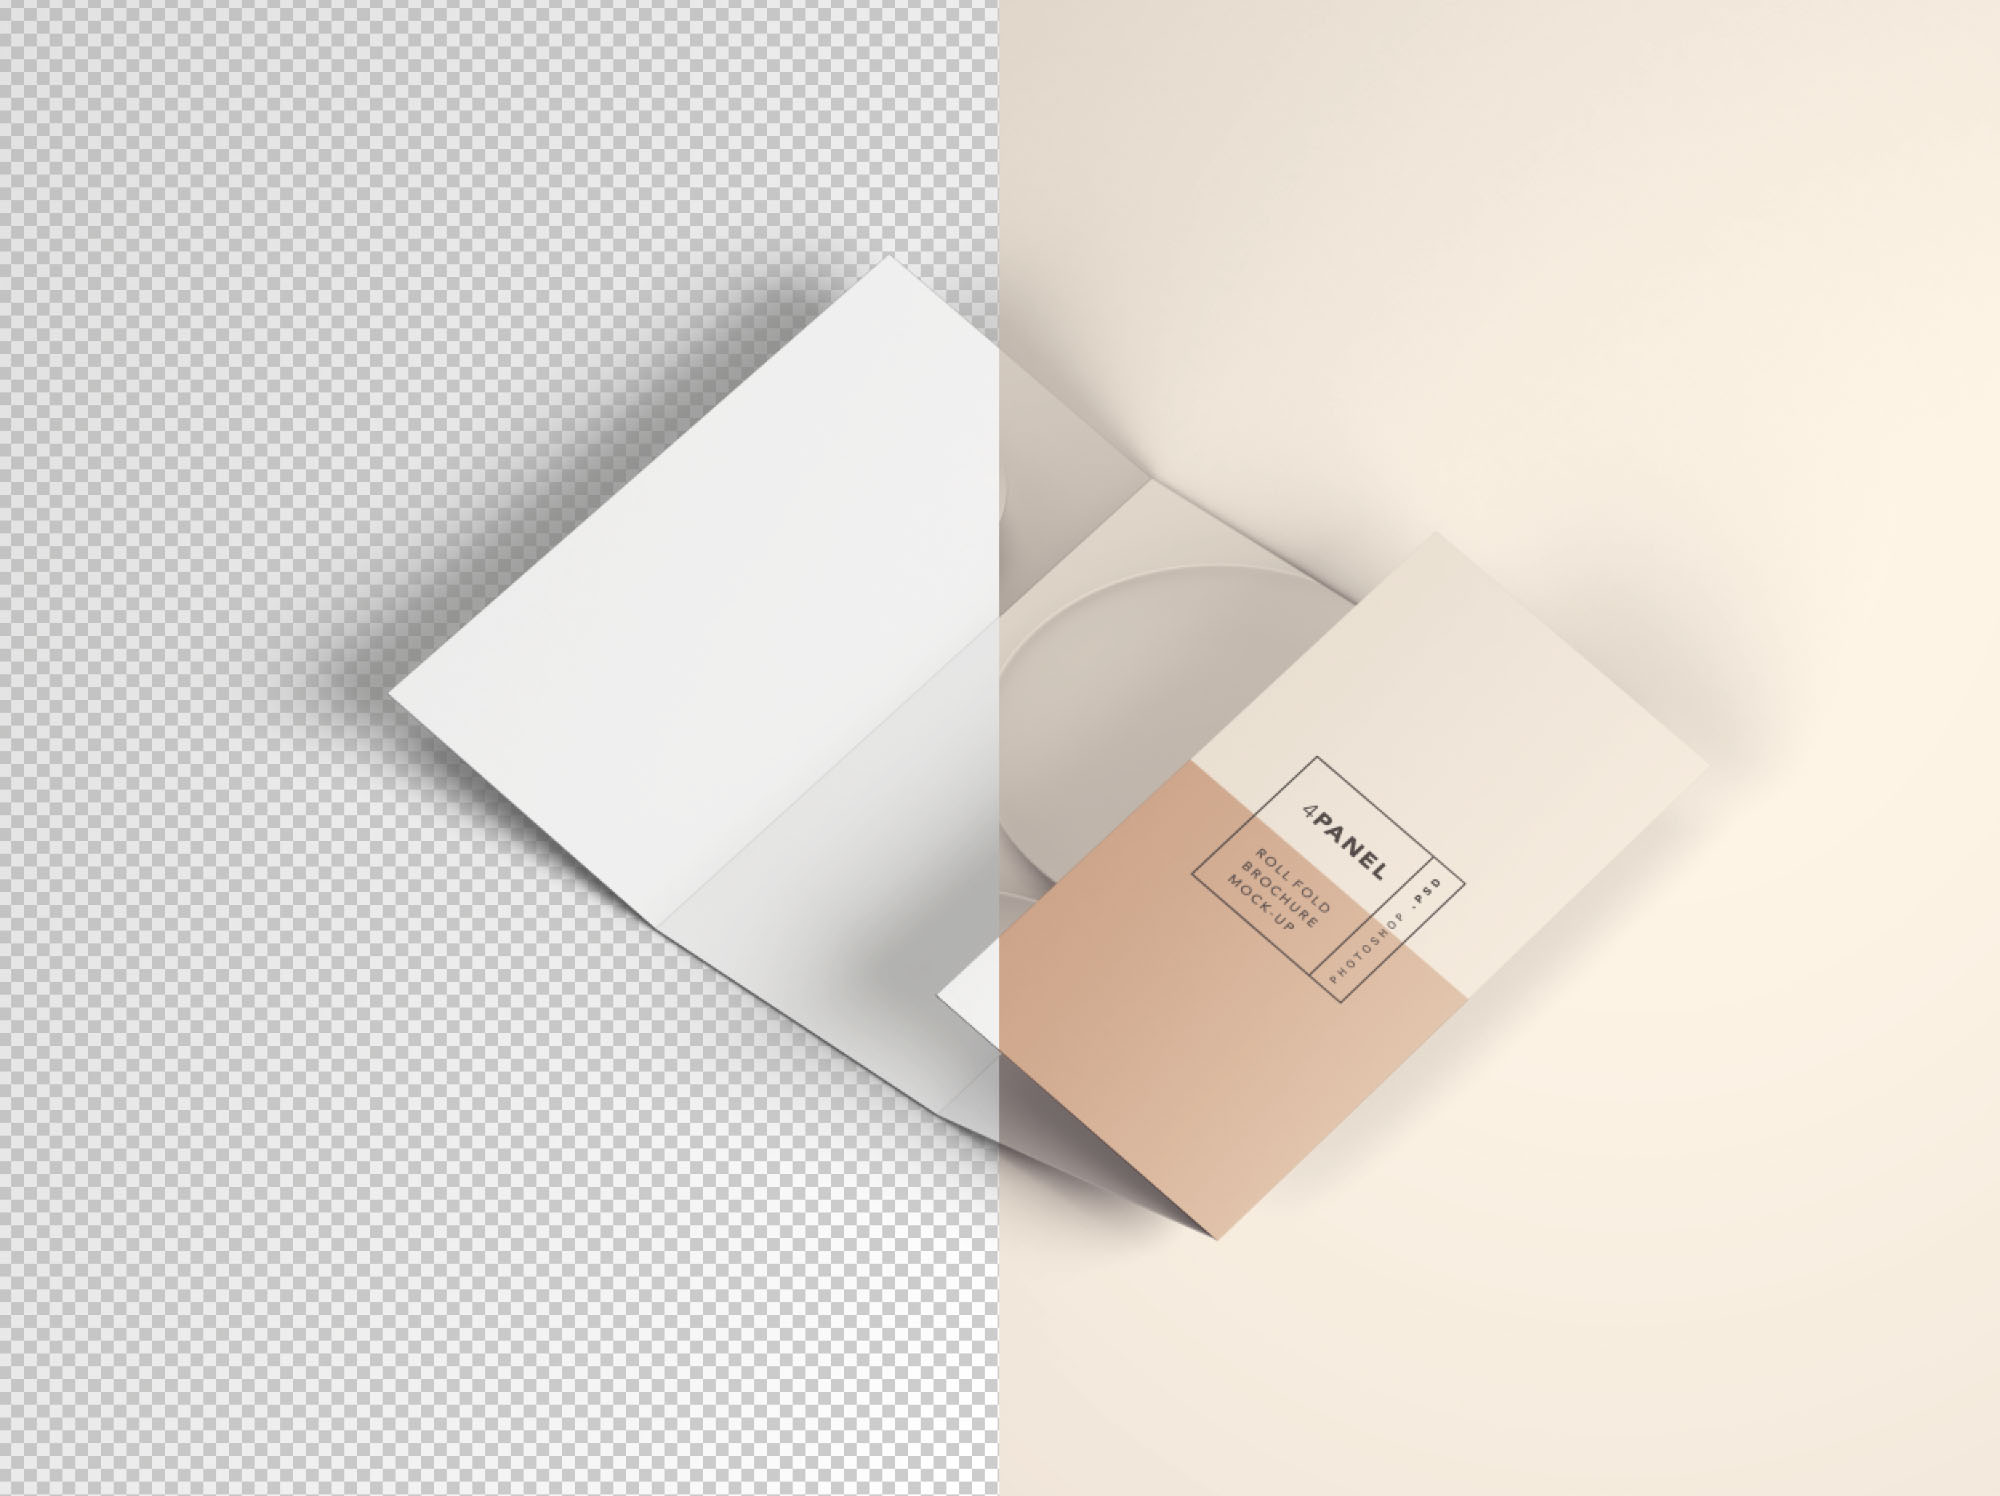 4 Panel Roll Fold Brochure Mockup - Transparent